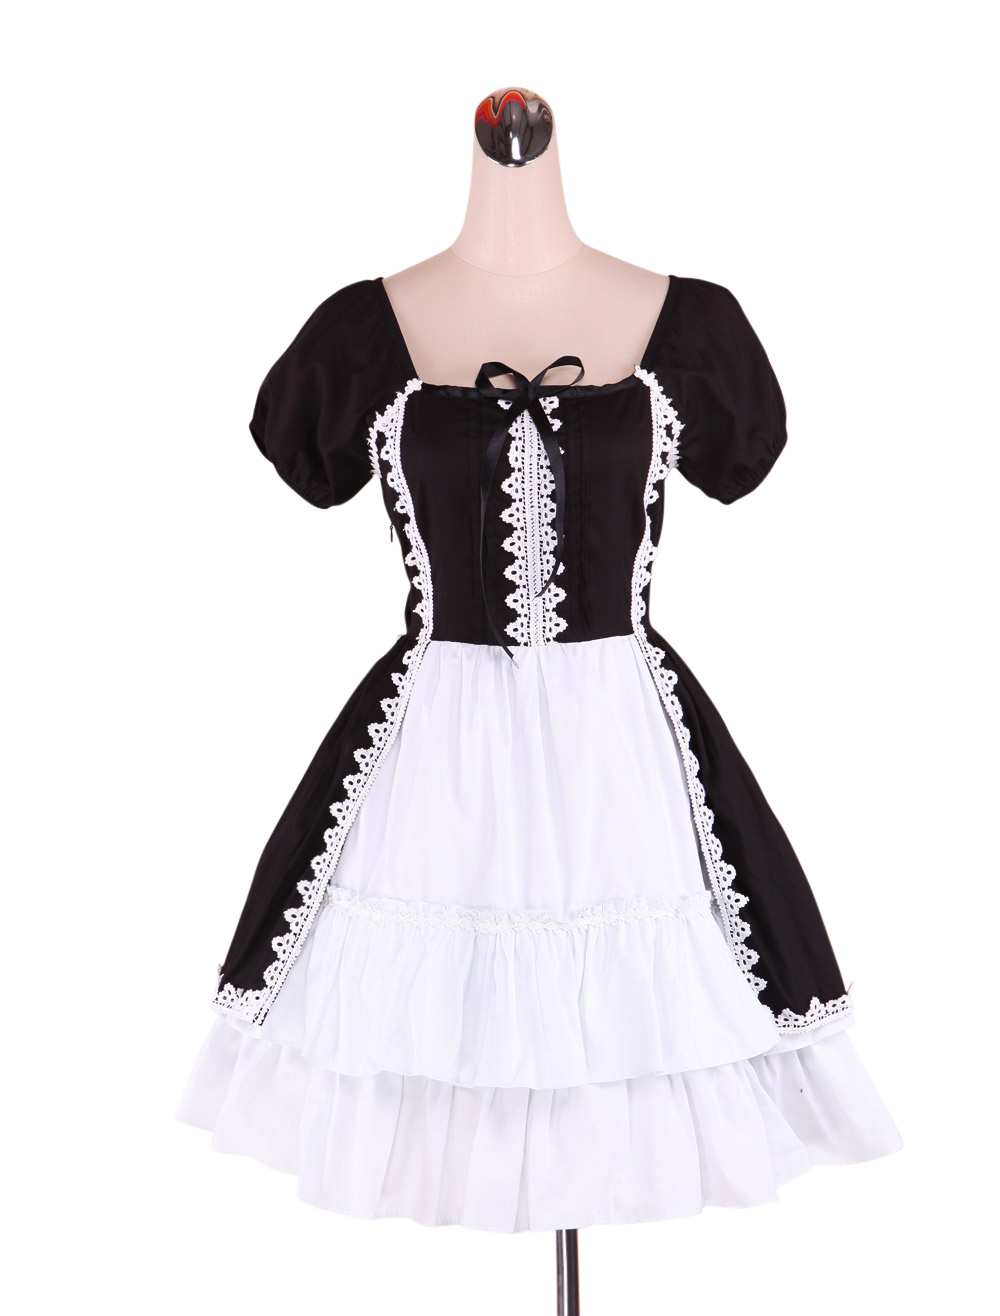 Primary image for ZeroMart Black and White Cotton Ruffle Vintage Gothic Victorian Maid Lolita Dres